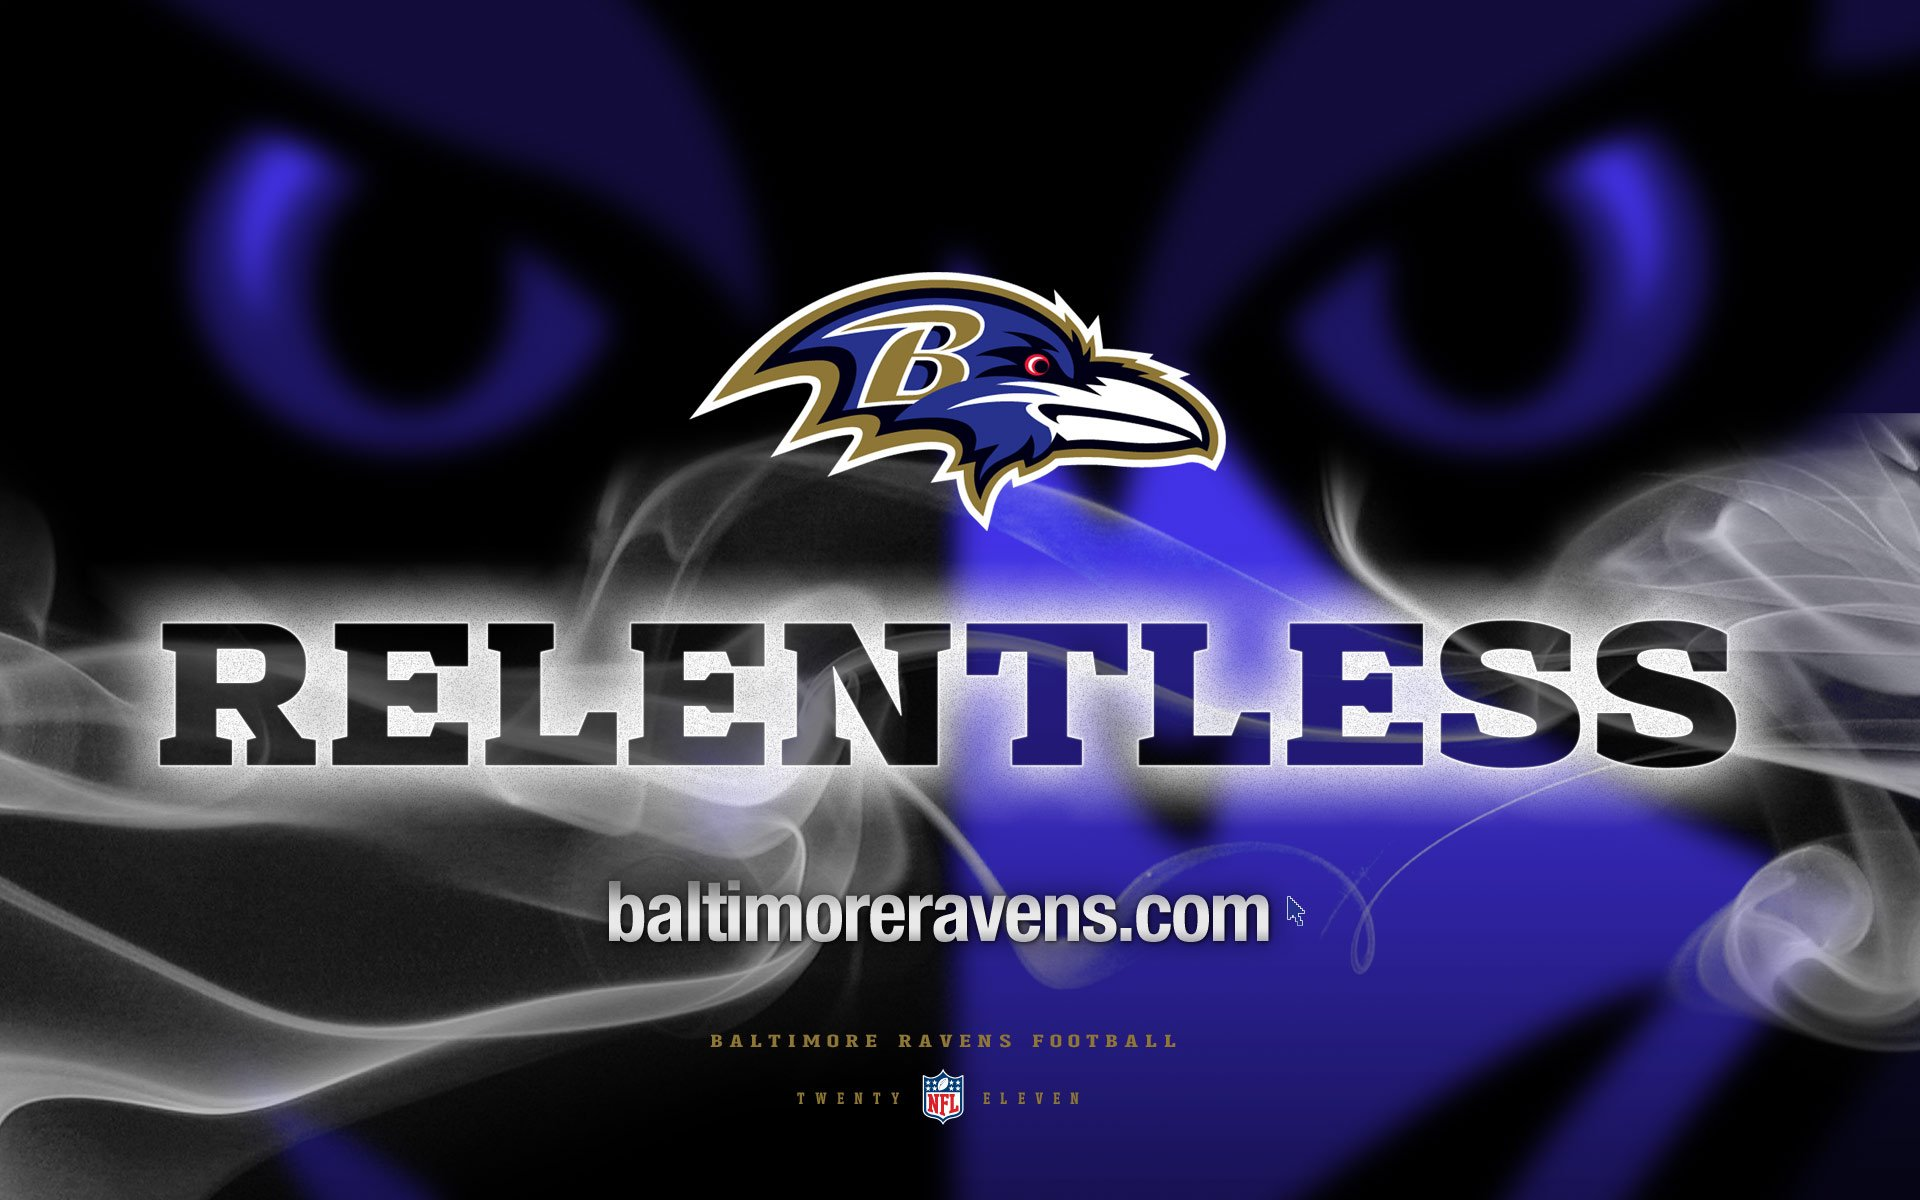 Baltimore Ravens Nfl 1920x1200 Wide Images   top rated page 1 1920x1200